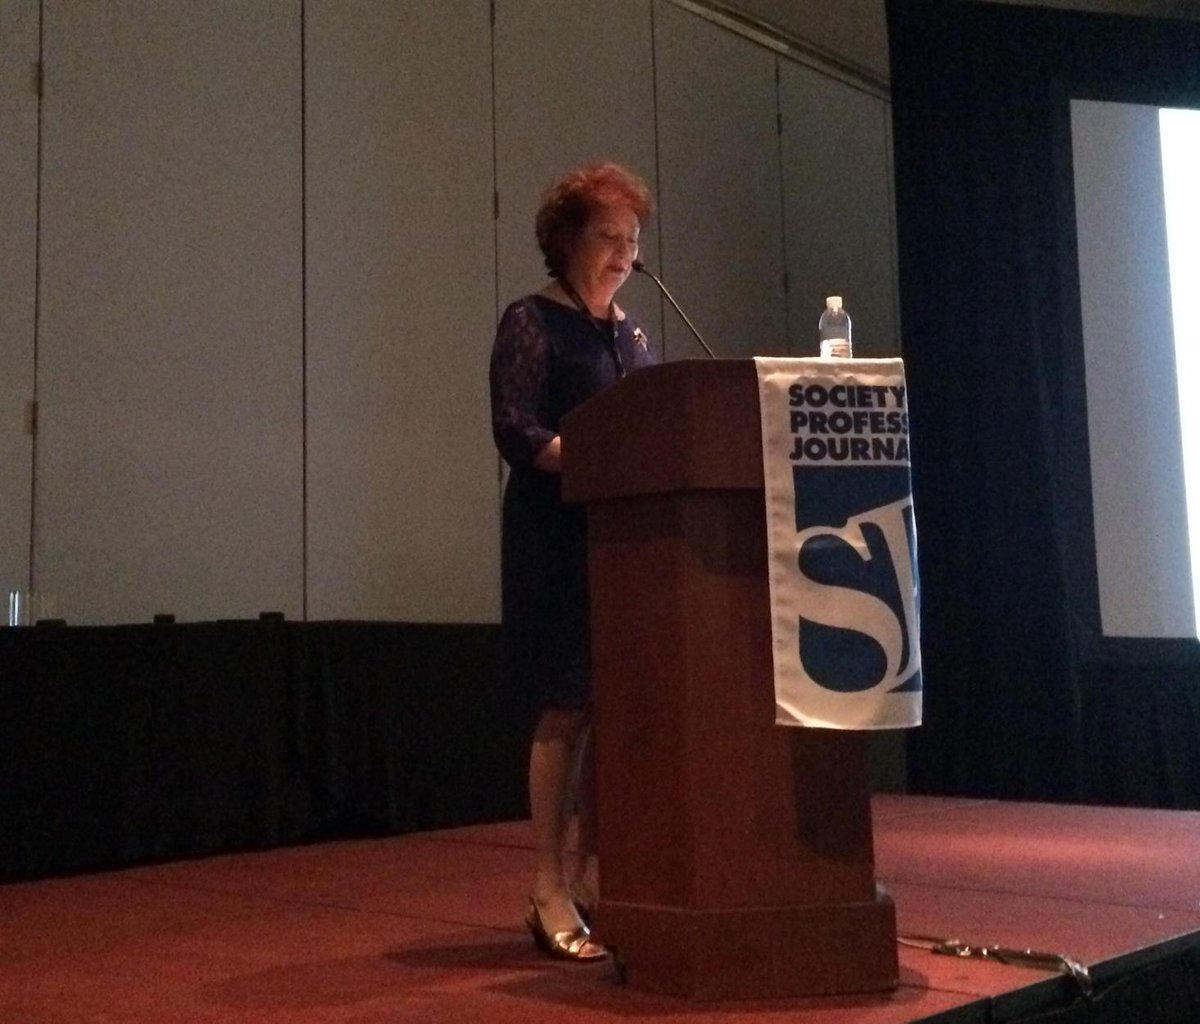 Congratulations to former @pcli president Carolyn James on winning a Sunshine Award! #eij15 http://t.co/acPrtr1trx